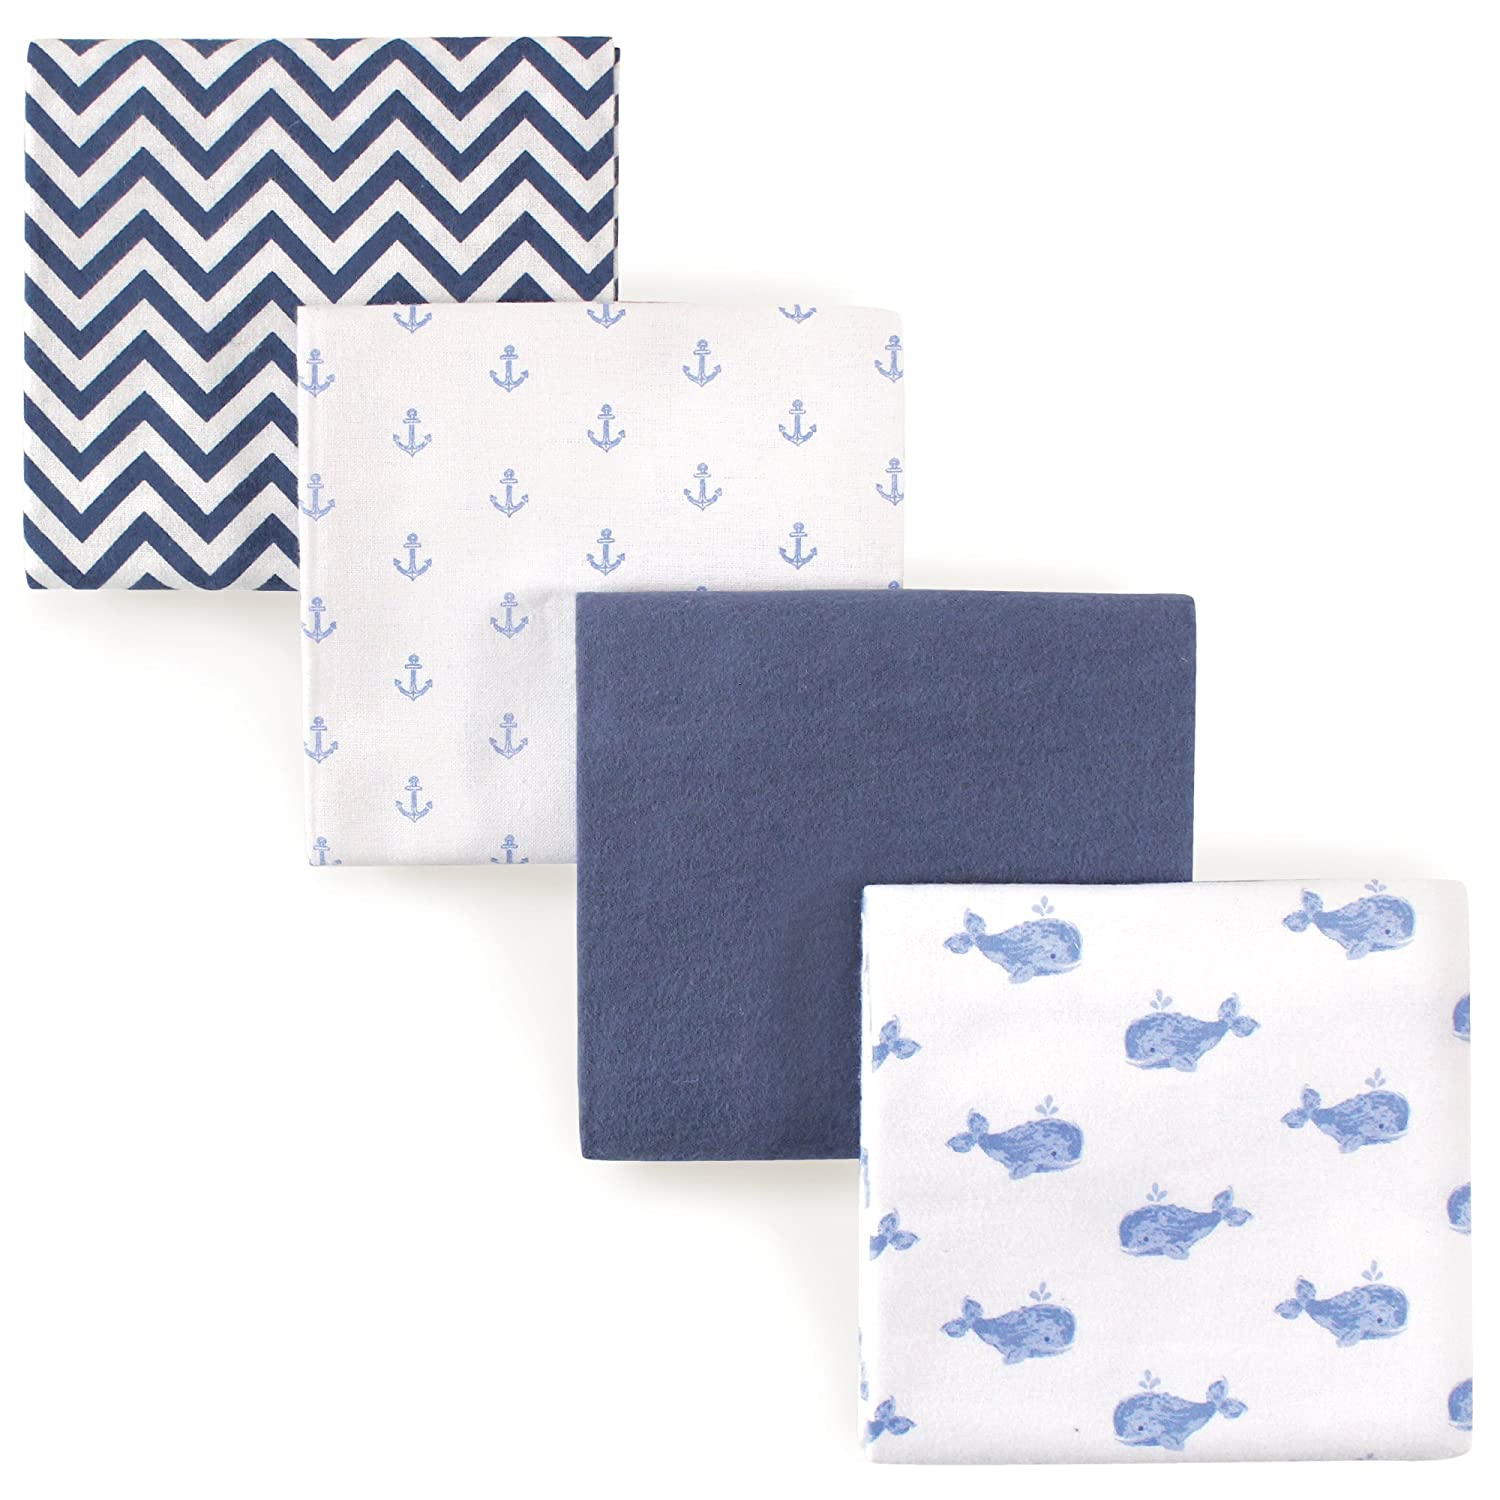 Hudson Baby 4 Piece Flannel Receiving Blanket, Moon and Back, One Size BabyVision Inc. Children's Apparel 52173